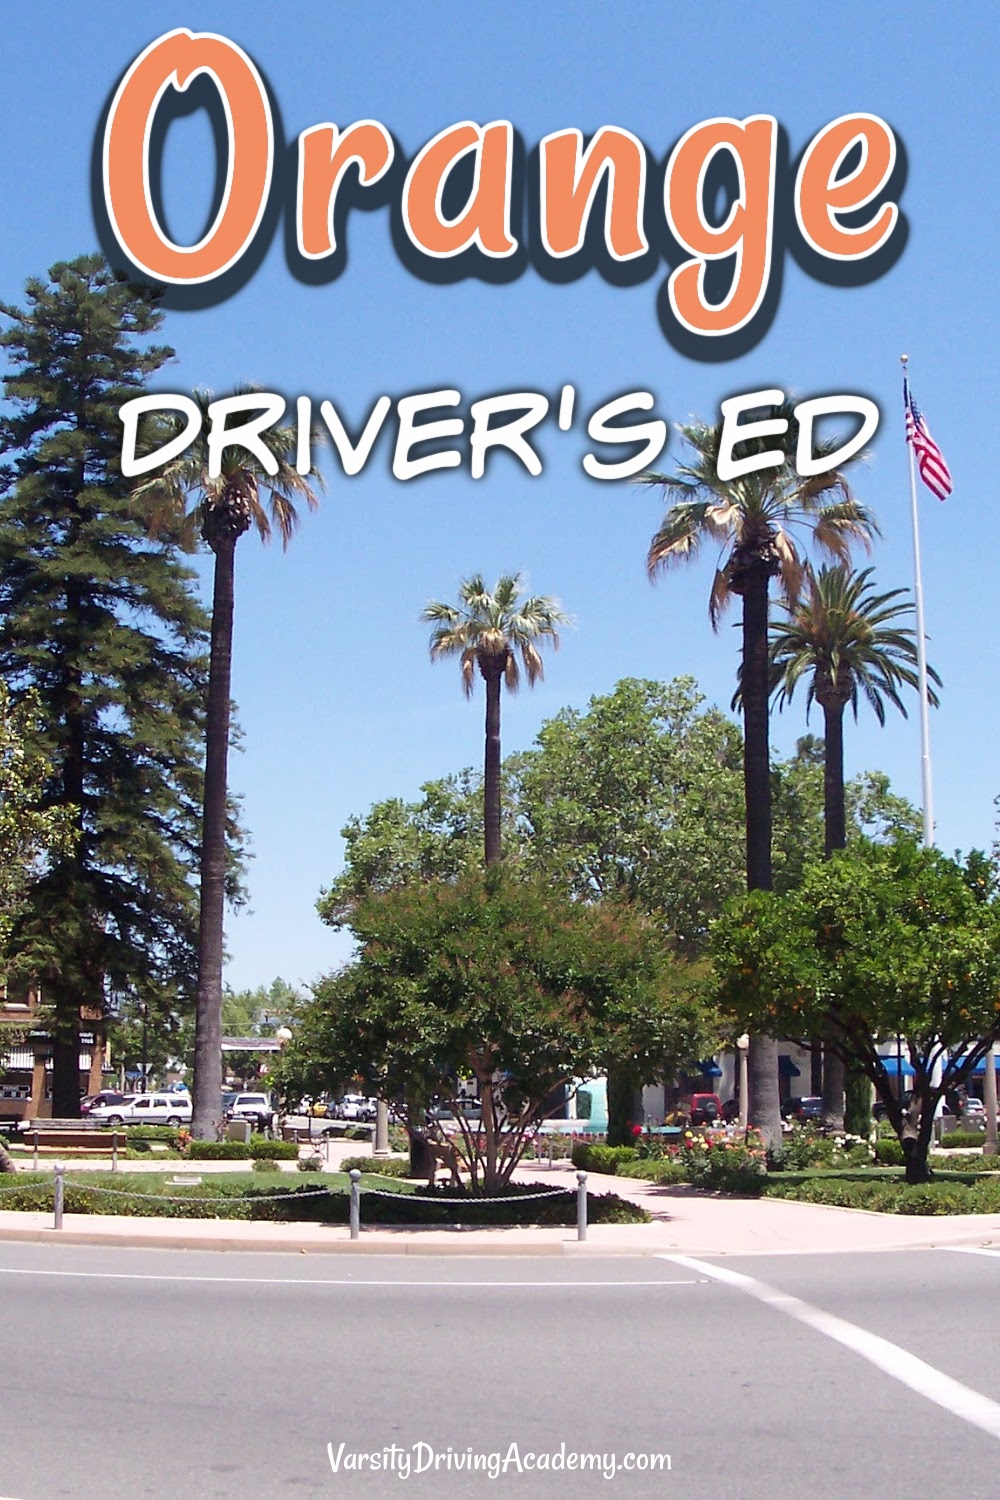 Varsity Driving Academy is prepared to teach students how to drive defensively and safely as the best Orange drivers ed.